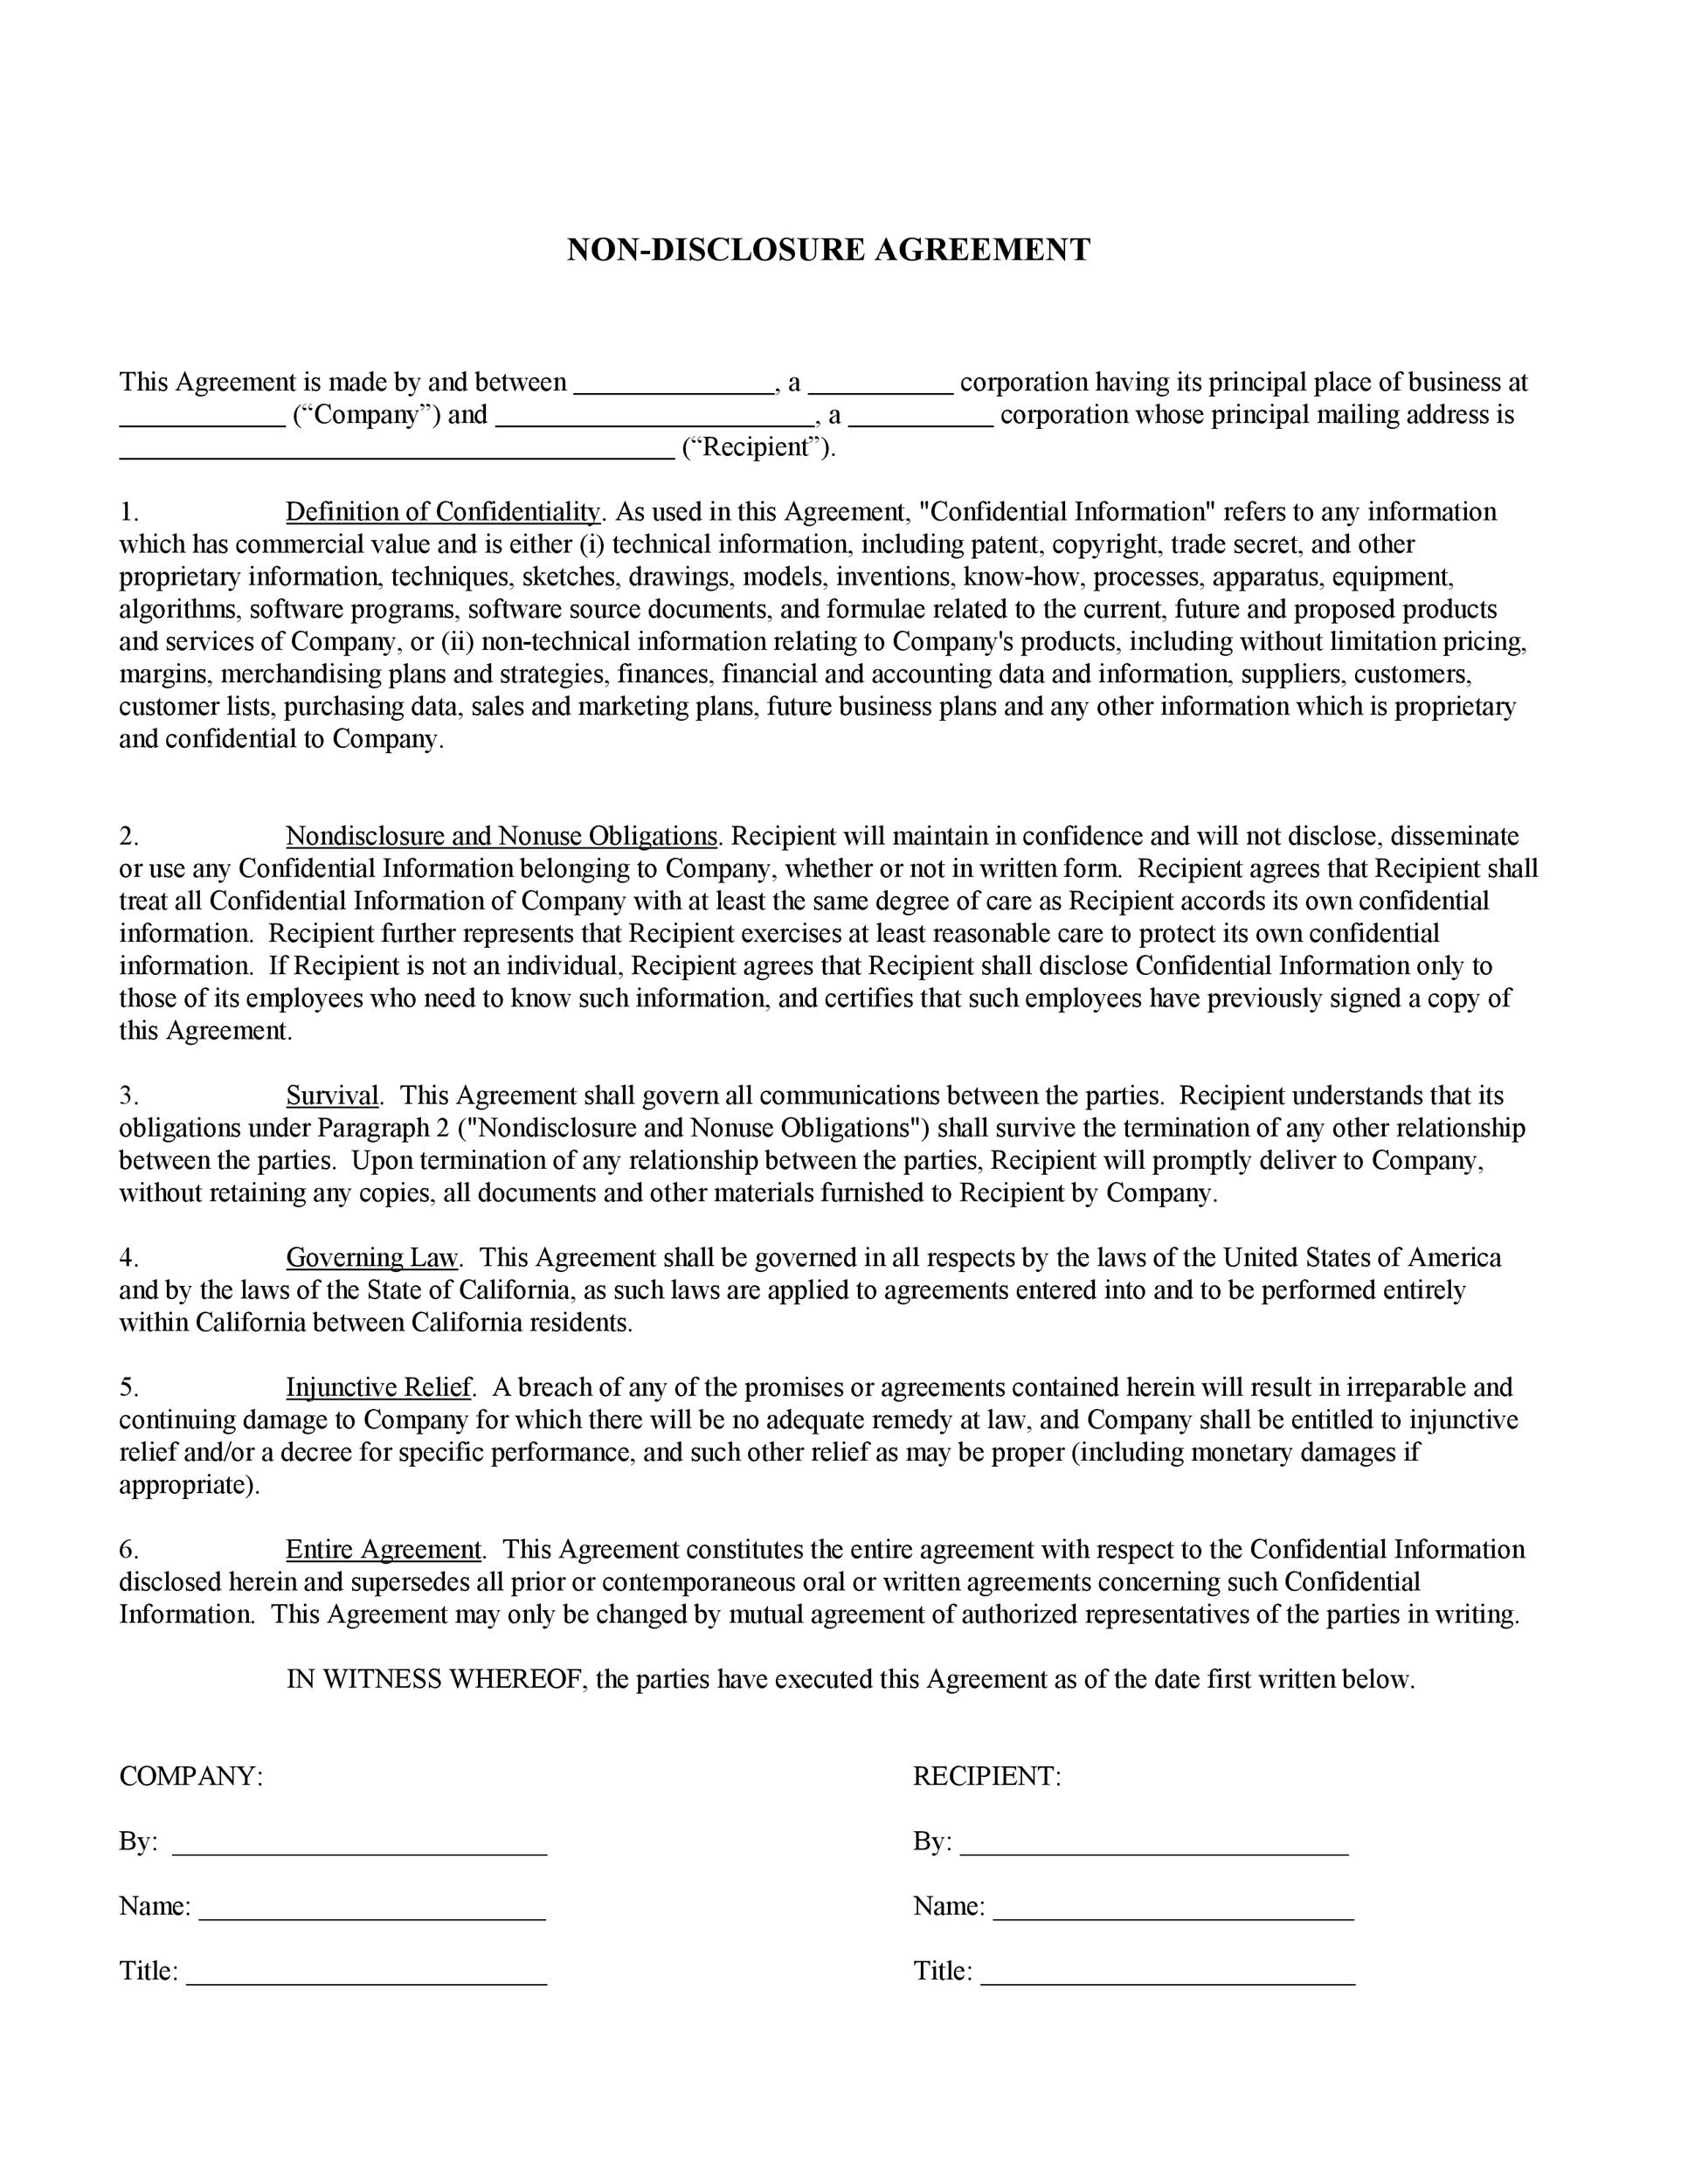 40 Non Disclosure Agreement Templates Samples Forms ᐅ